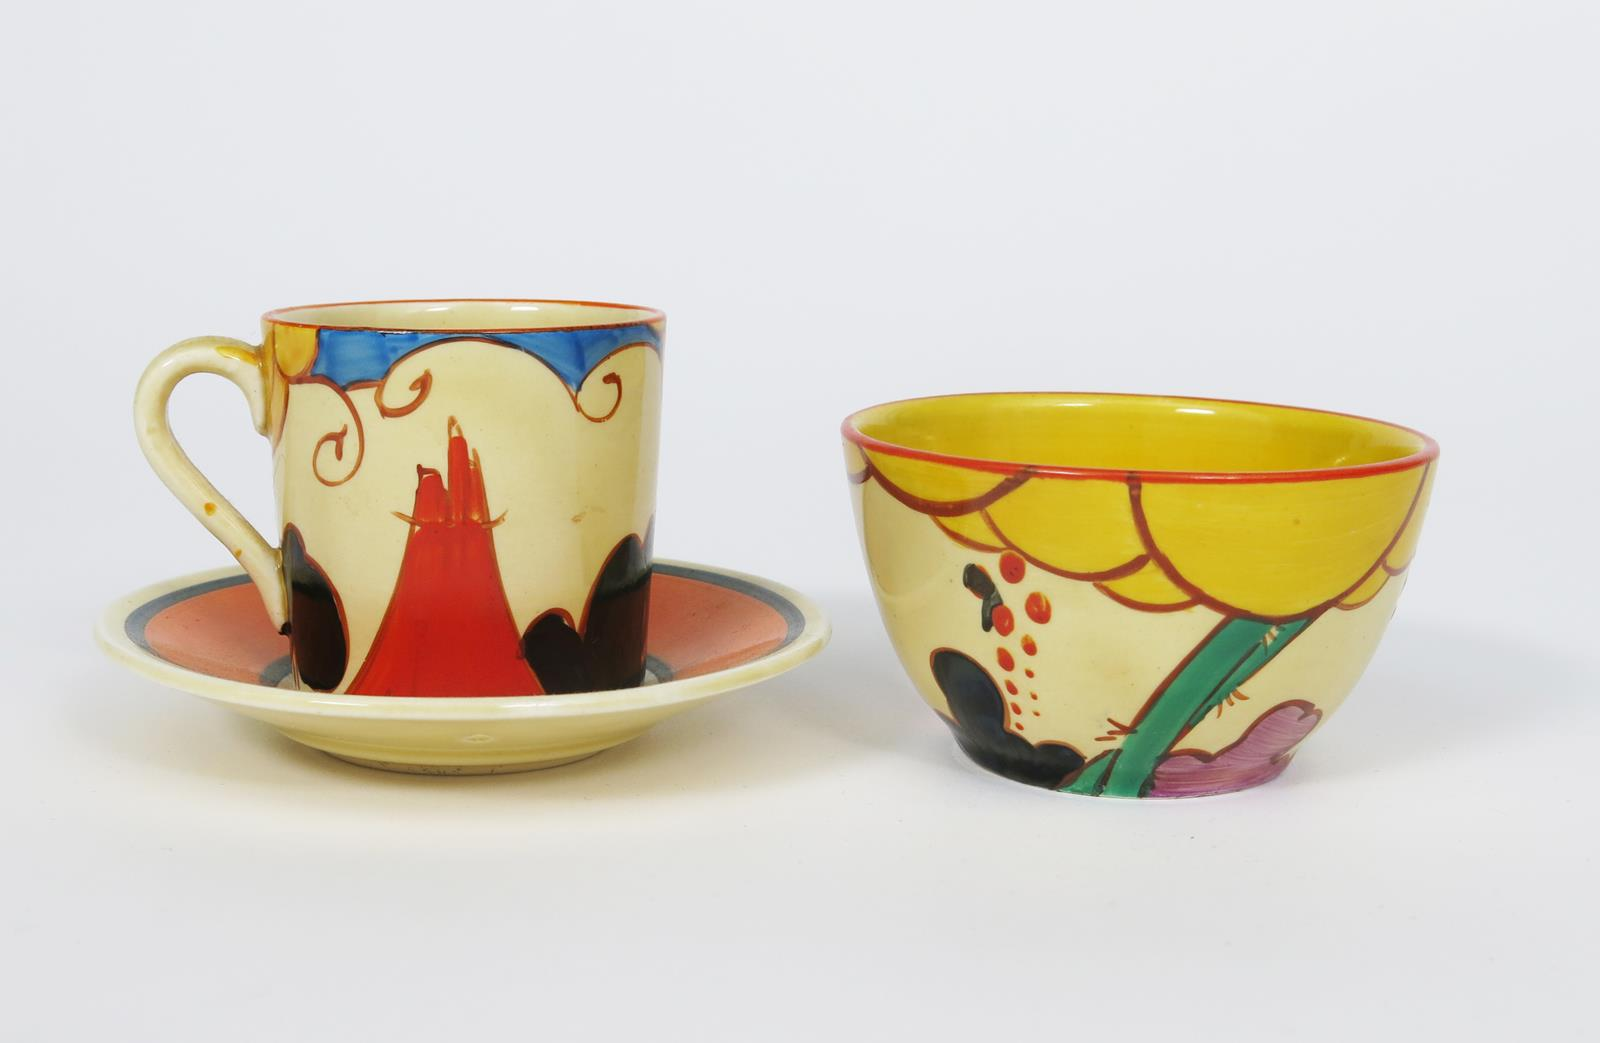 'Summerhouse' a Clarice Cliff Fantasque Bizarre Tankard coffee can and saucer and en suite sugar - Image 2 of 2